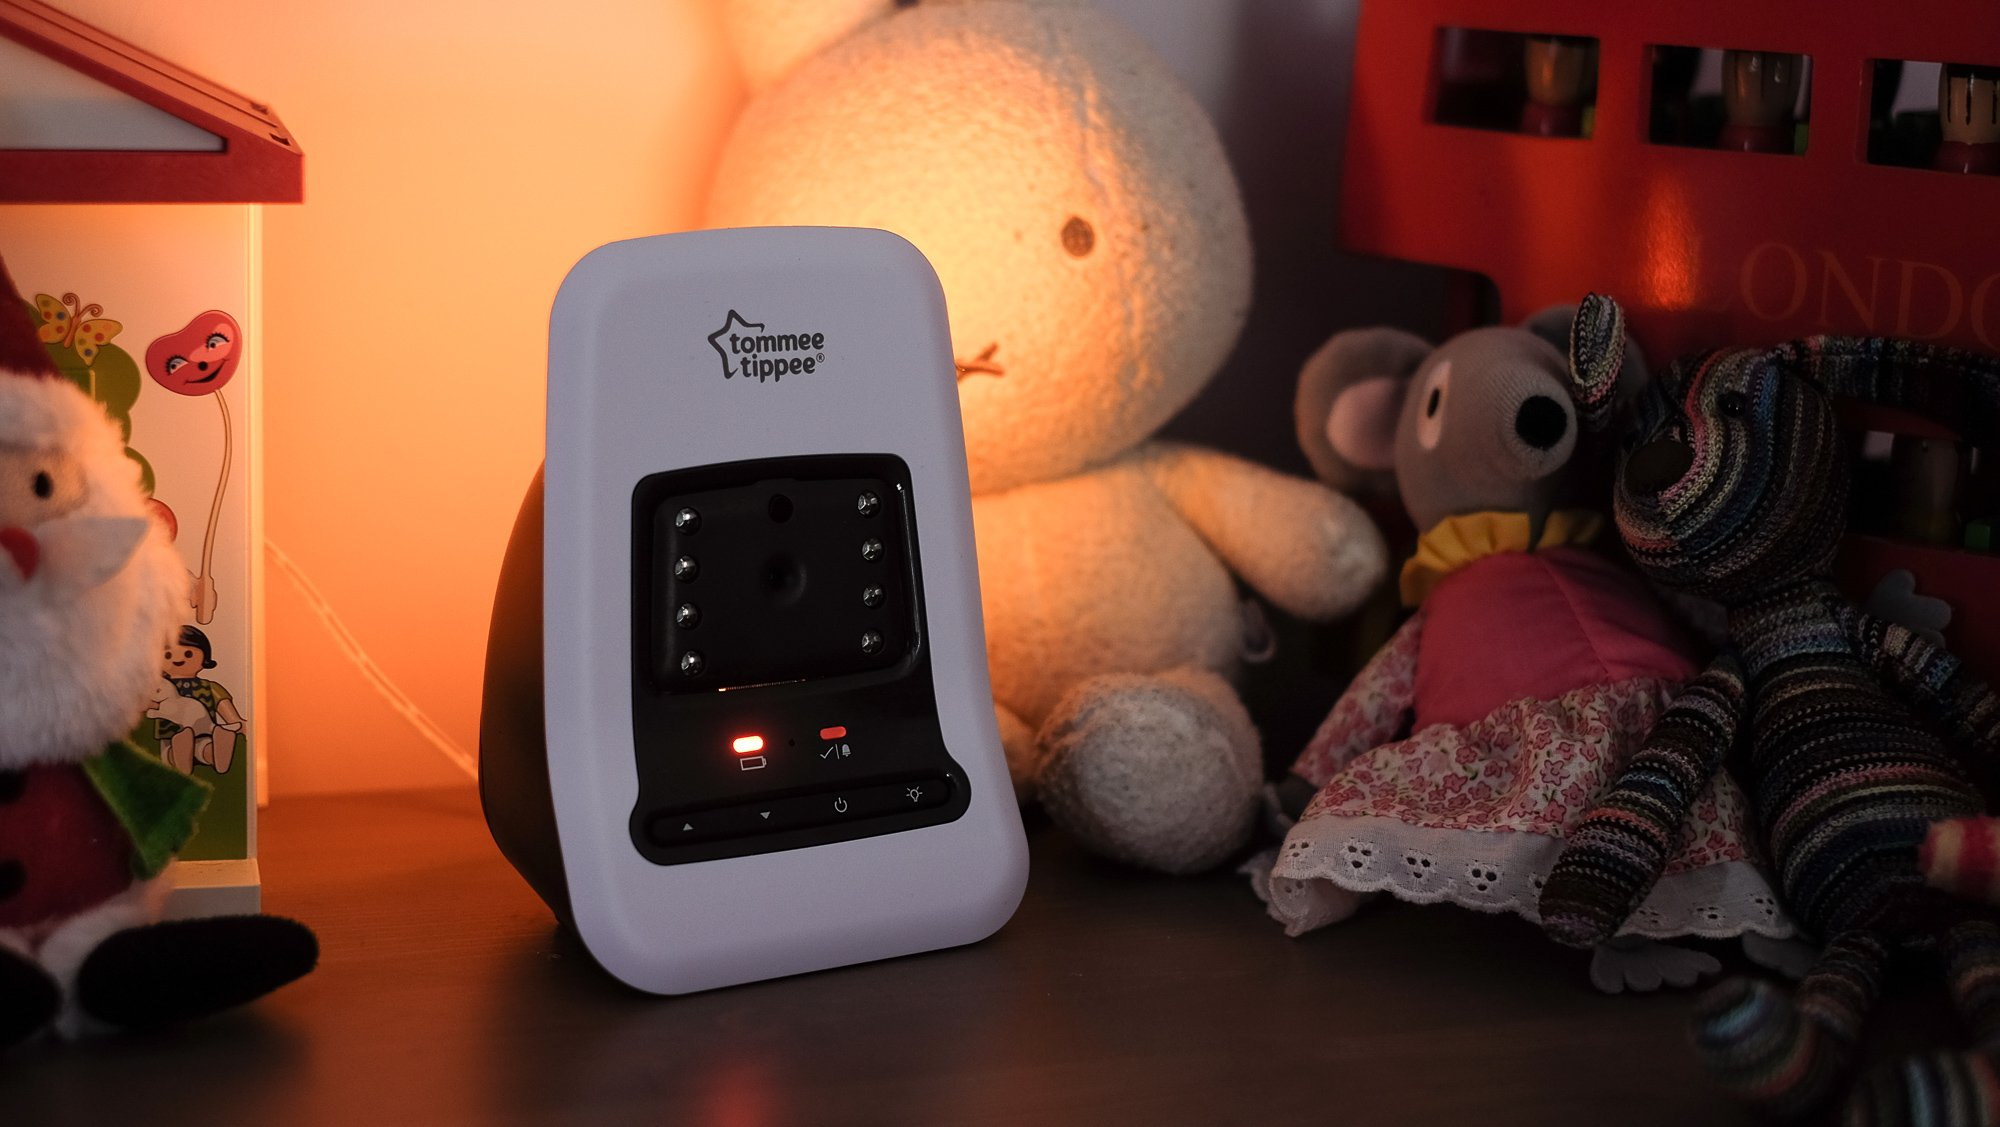 Tommee Tippee Closer to Nature Video Sensor Monitor review: The baby monitor to buy | Expert Reviews